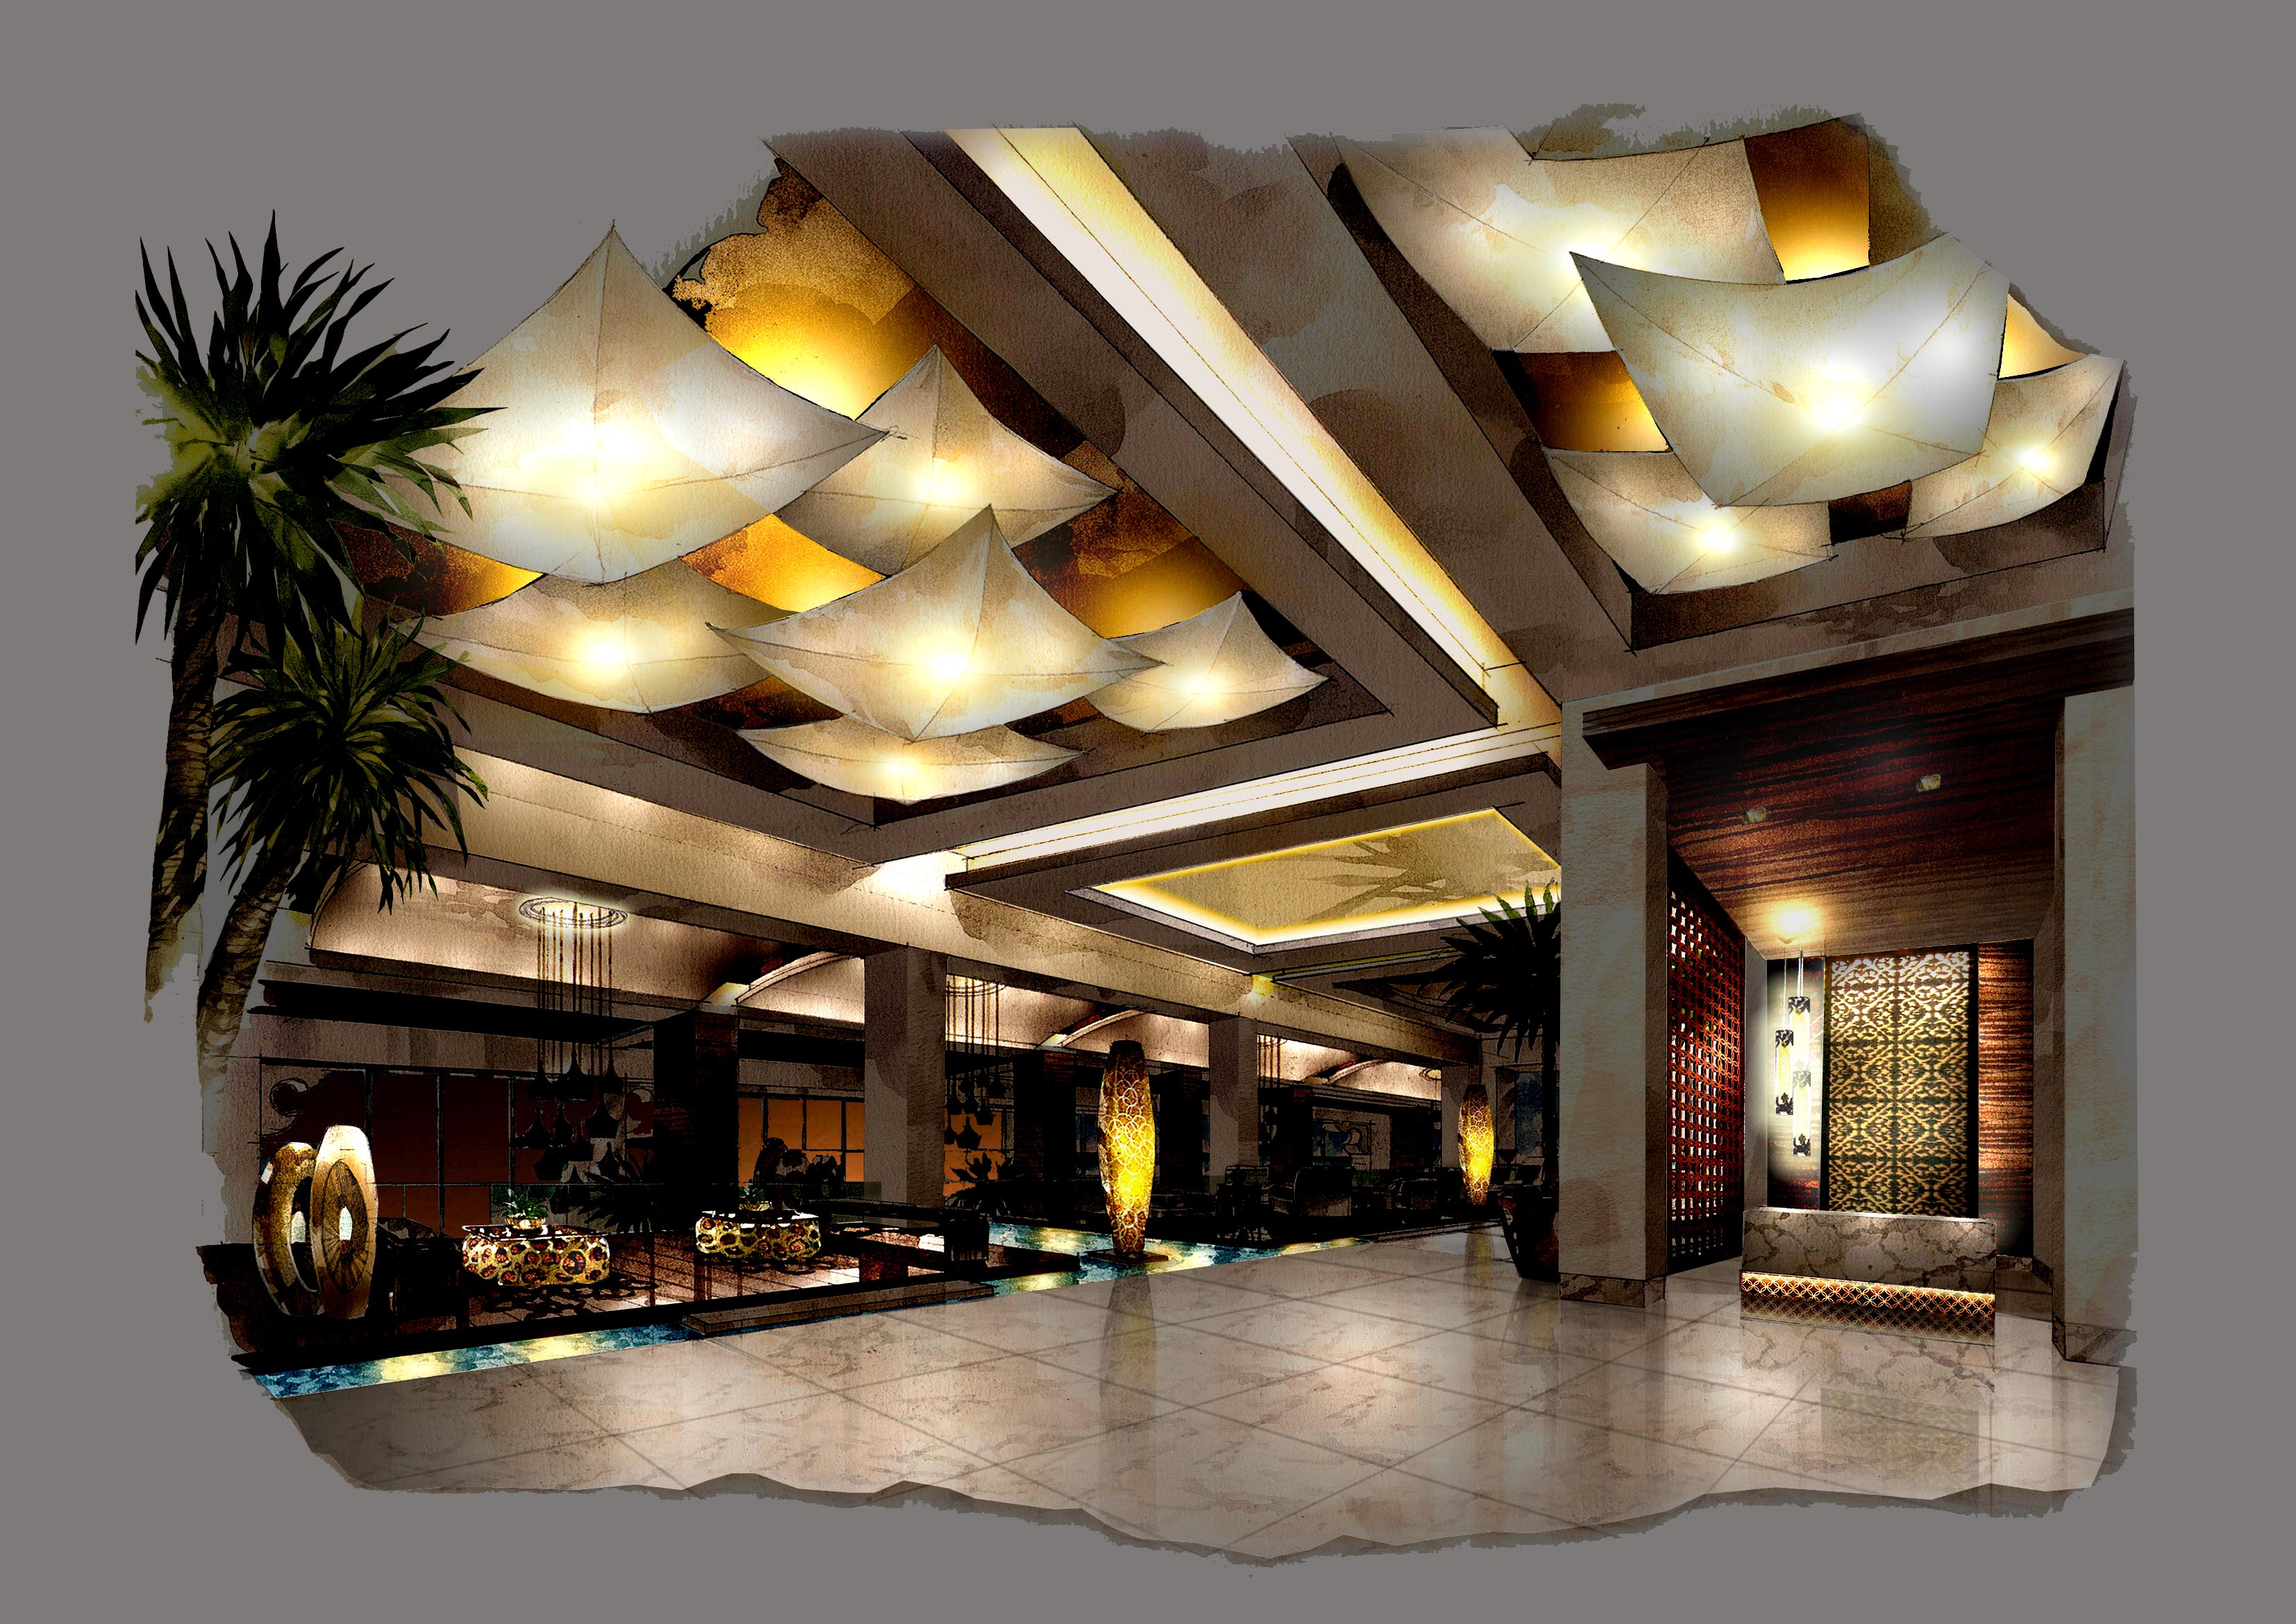 Hospitality Interior Lighting by Siddharth Mathur at